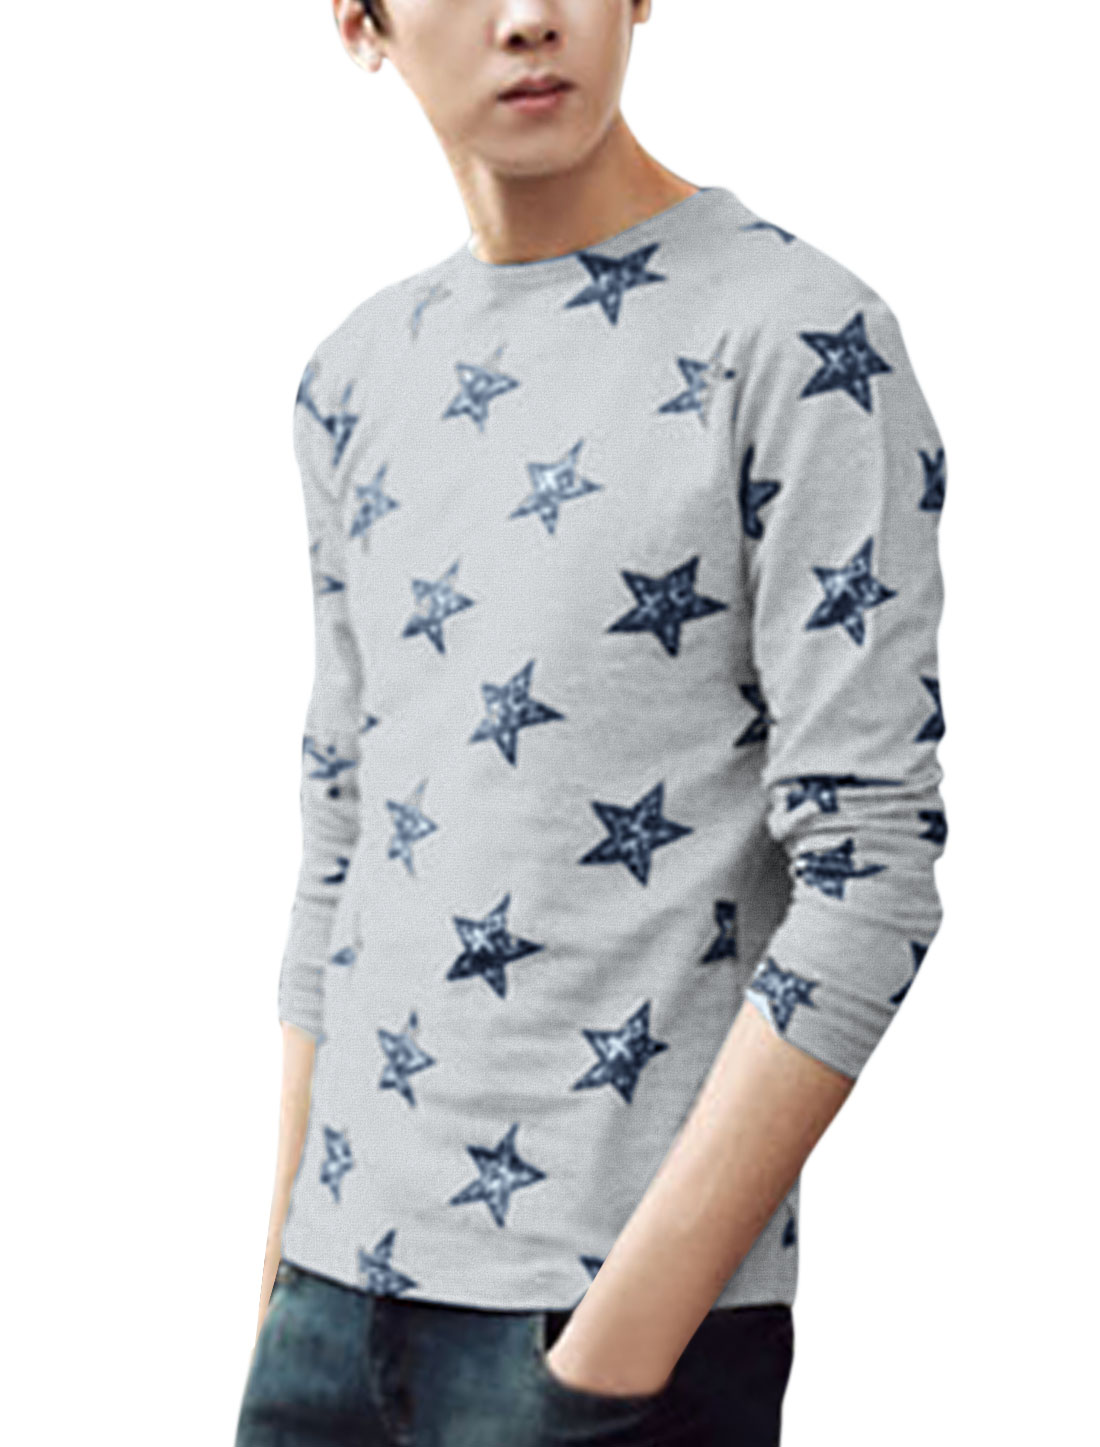 Men Round Neck Long Sleeve Stars Prints T-Shirt Gray M